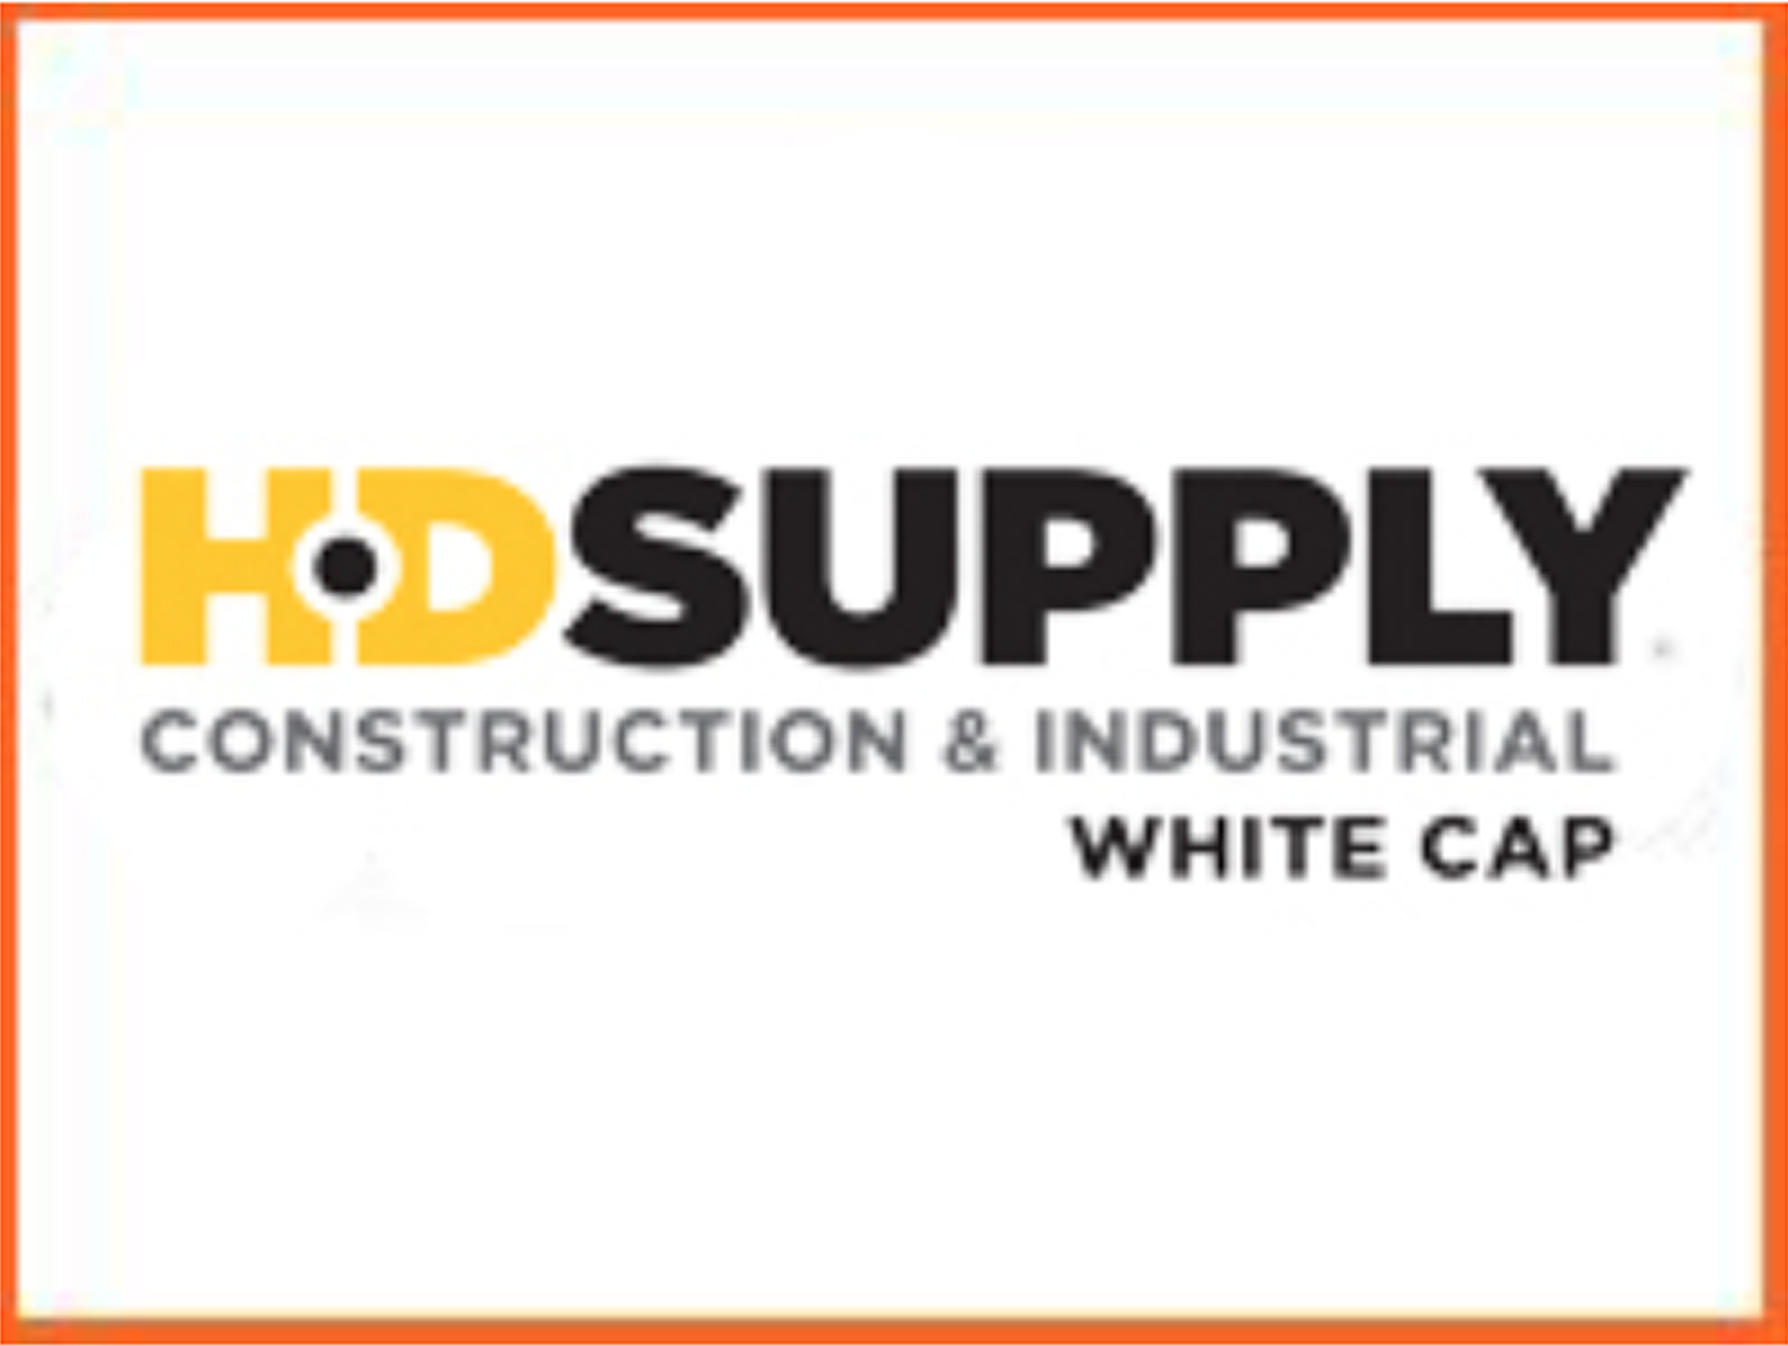 HD Supply White Cap - HD Supply White Cap is your local jobsite support team - and the country's leading distributor of specialty hardware, tools, materials and safety supplies for concrete contractors, general contractors, MEP contractor and many others. We support pros like you with more inventory and delivery options. We'll deliver your order to the jobsite, ship it to you or have it ready for will-call pick up in just two hours.www.whitecap.com